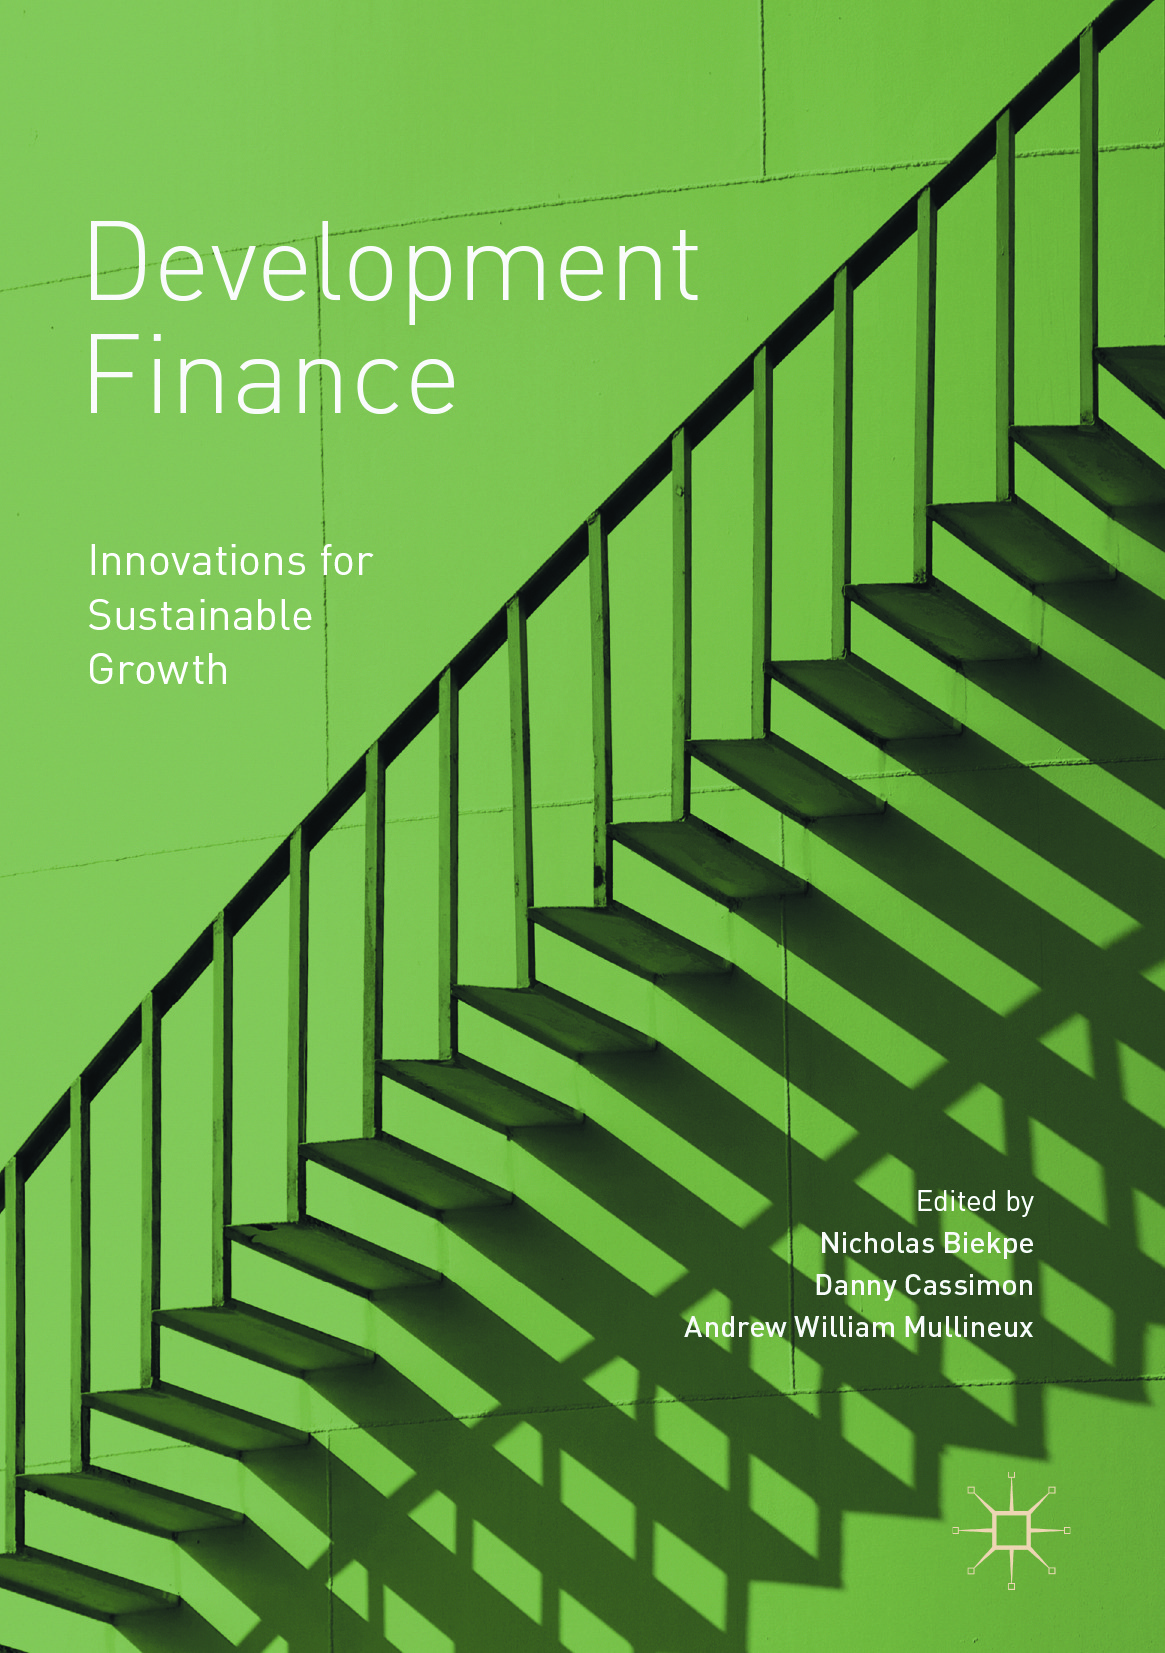 Biekpe, Nicholas - Development Finance, ebook